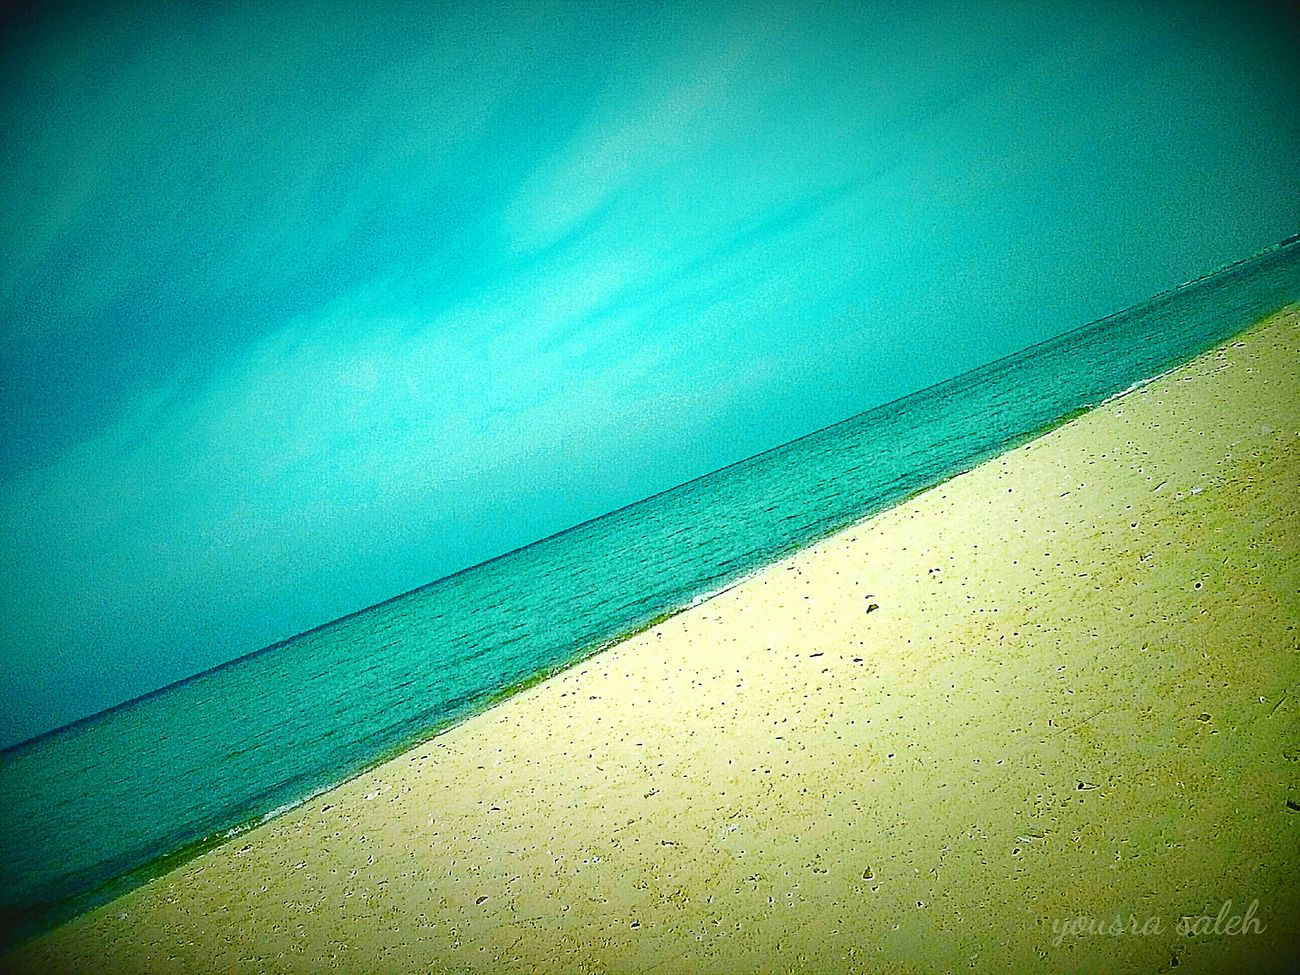 Colour Of Life Here Belongs To Me Sea View Seascape Sea And Sky Blue Sea And Blue Sky Nature Photography Colourful Blue Sea And Clear Water Golden Sand Sand Beach Relaxing Relaxing View Tranquil Scene Memories Nature Nature Colors Ras Sudr Egypt Egypt Smartphonephotography Taking Photos Seaside Viewing Love To Take Photos ❤